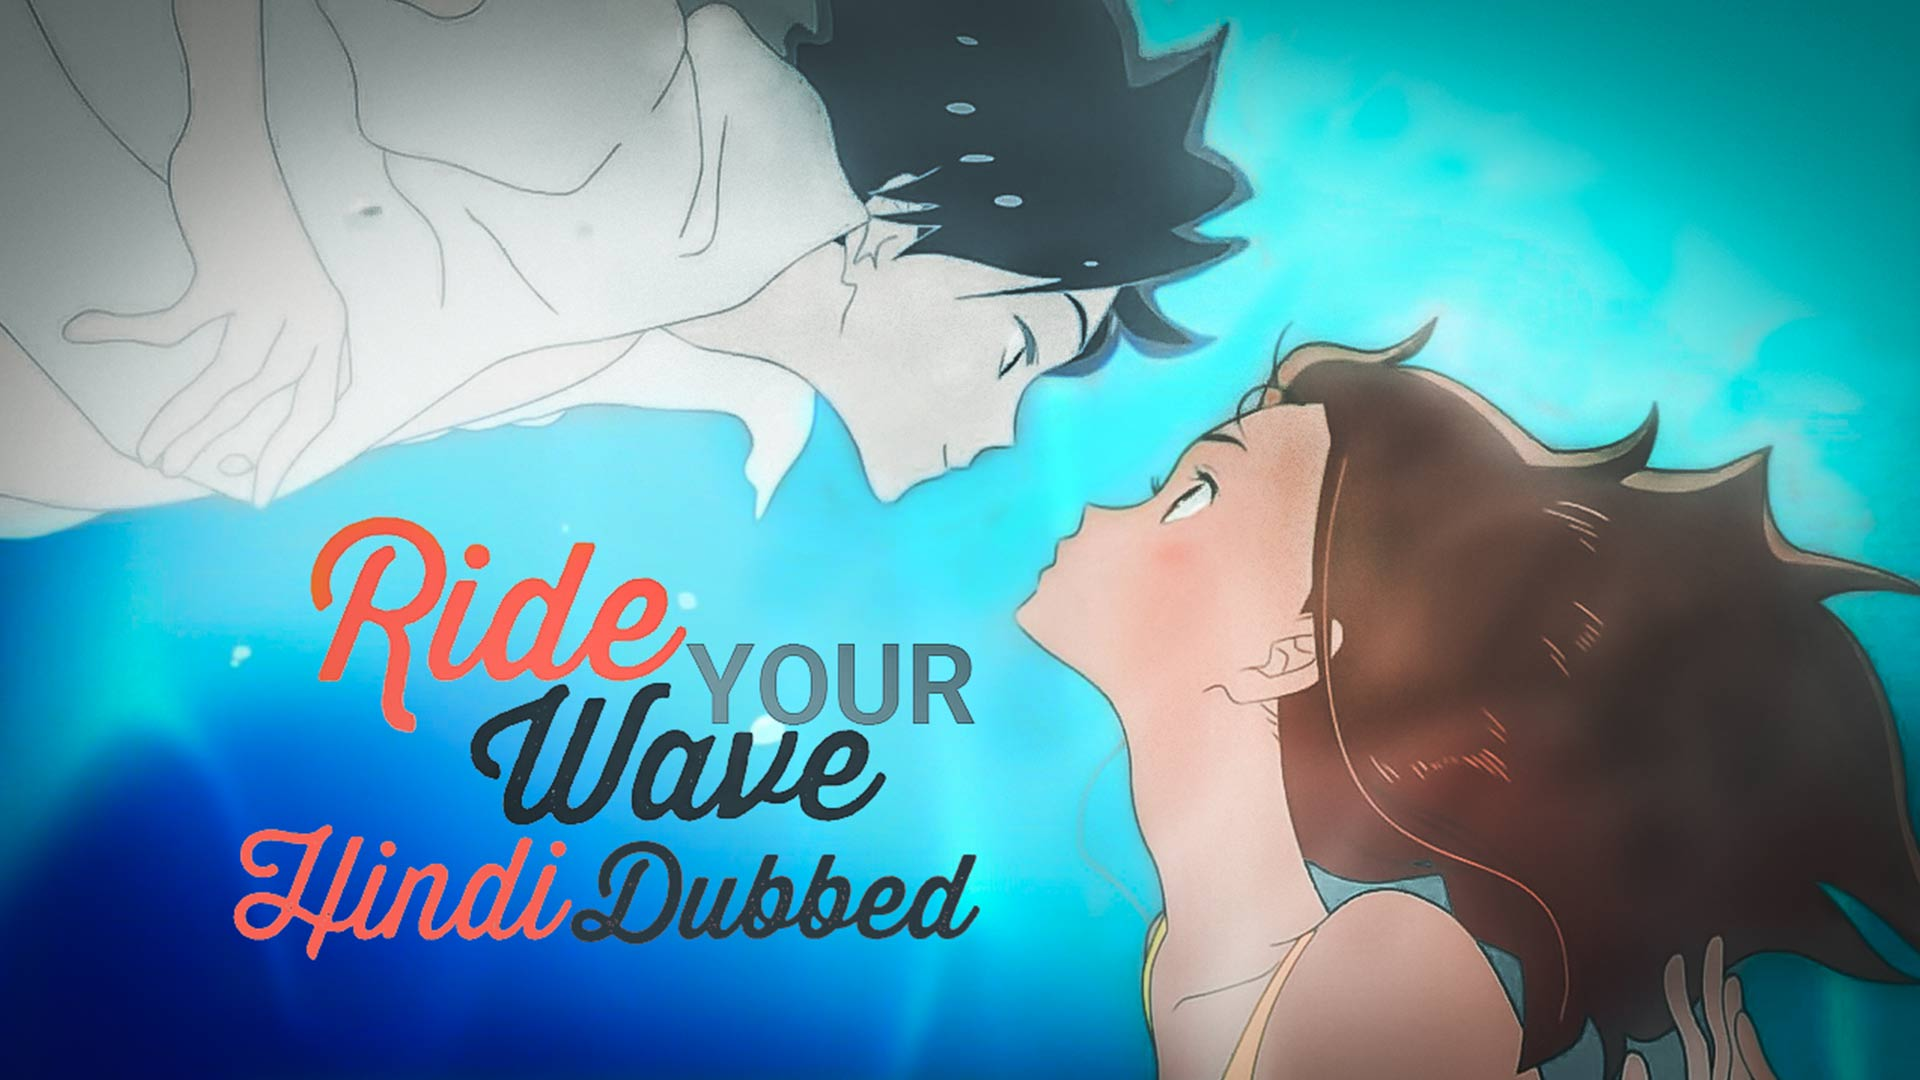 ride your wave hindi dub